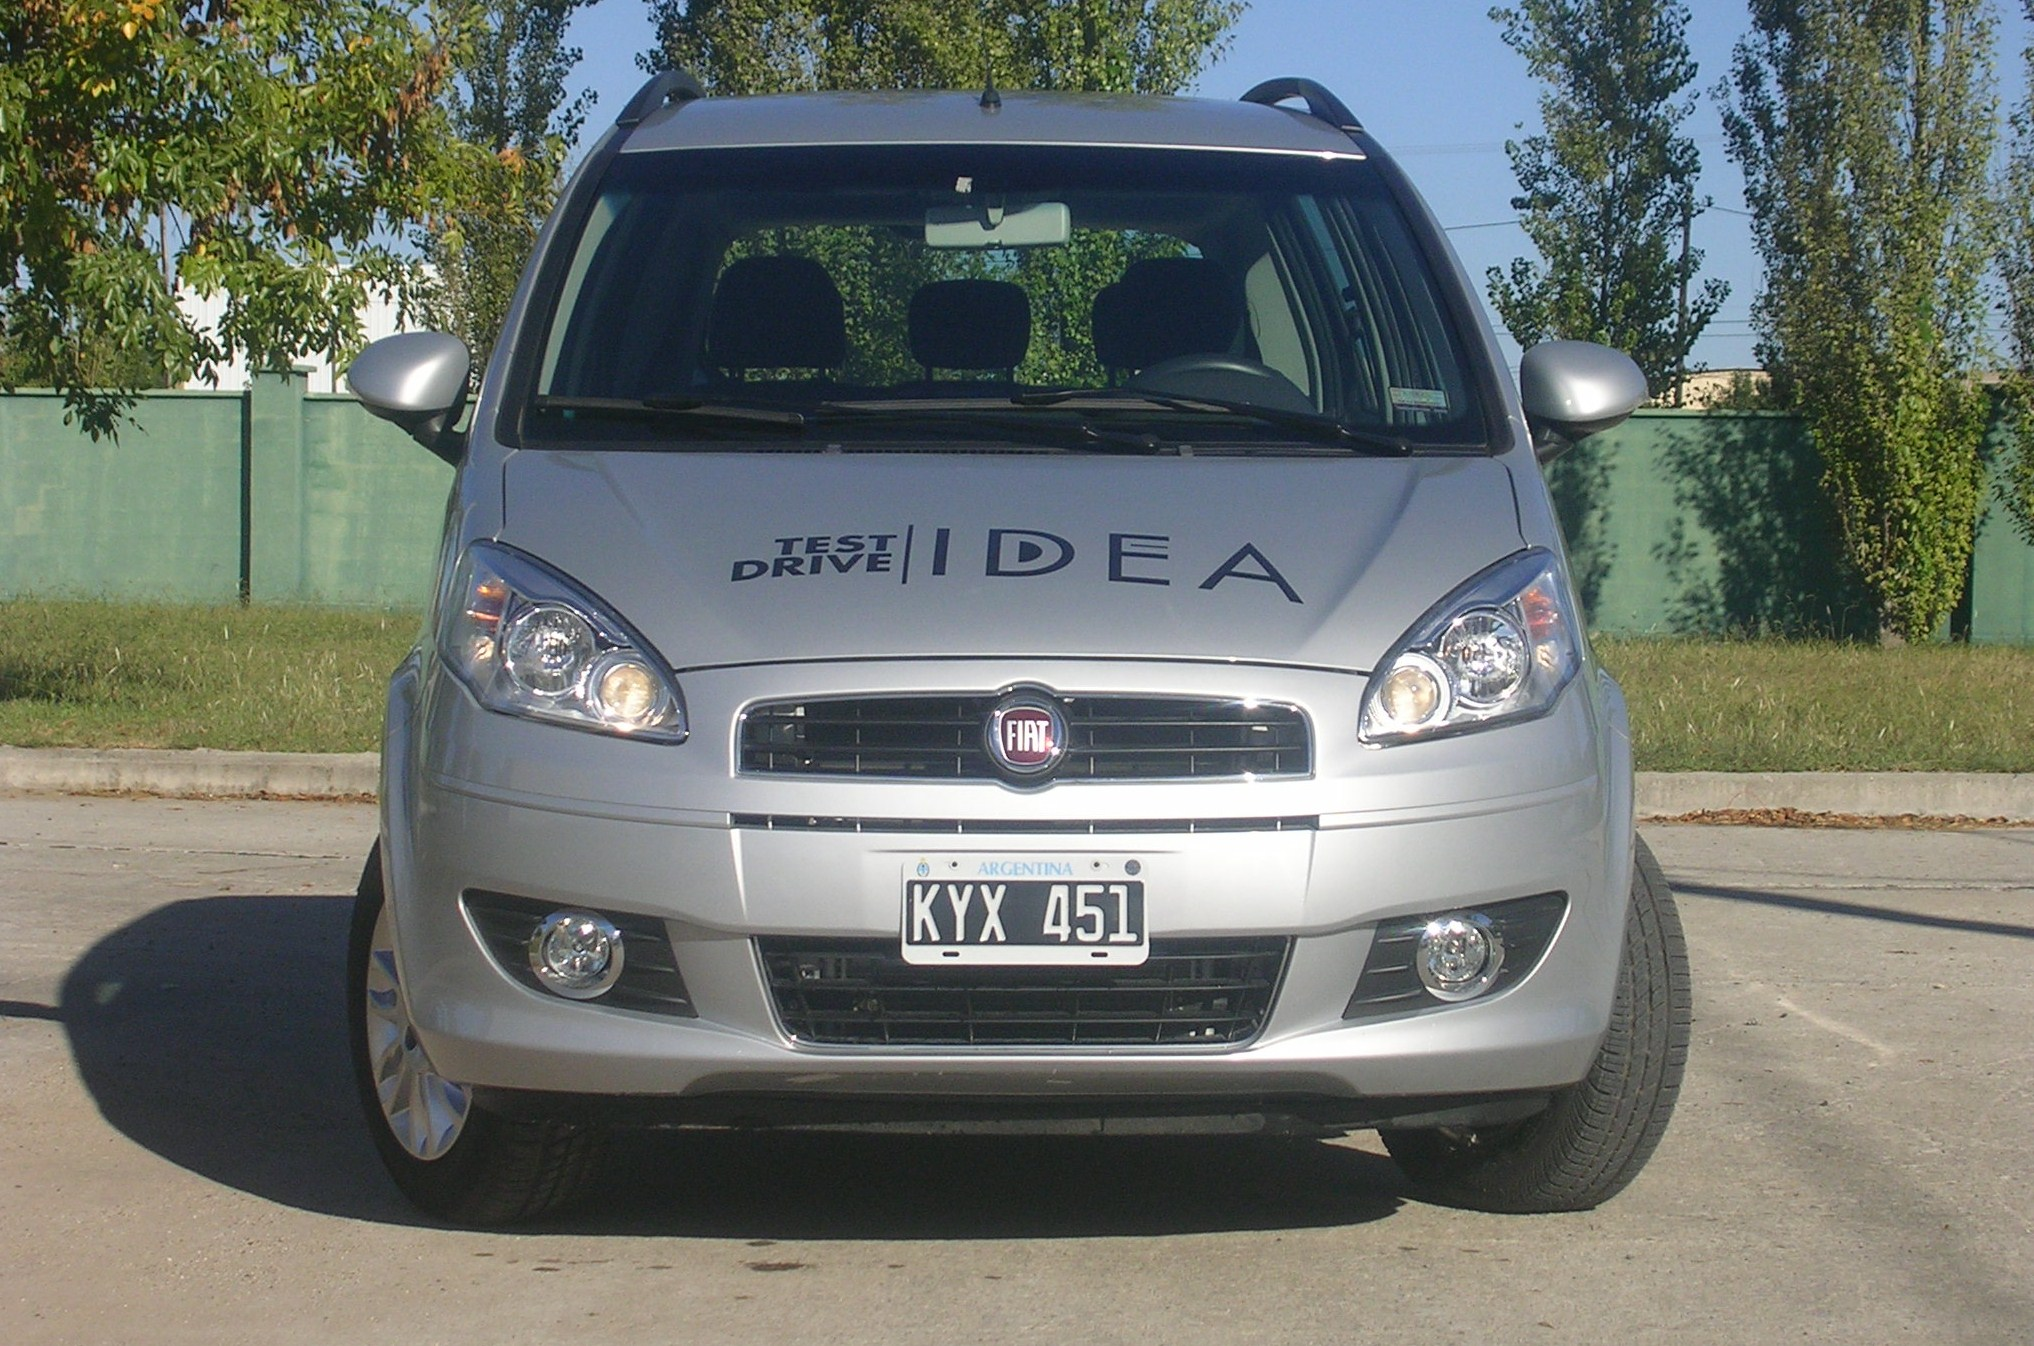 Probamos el fiat idea 1 4 attractive opci n racional for Fiat idea 2013 precio argentina